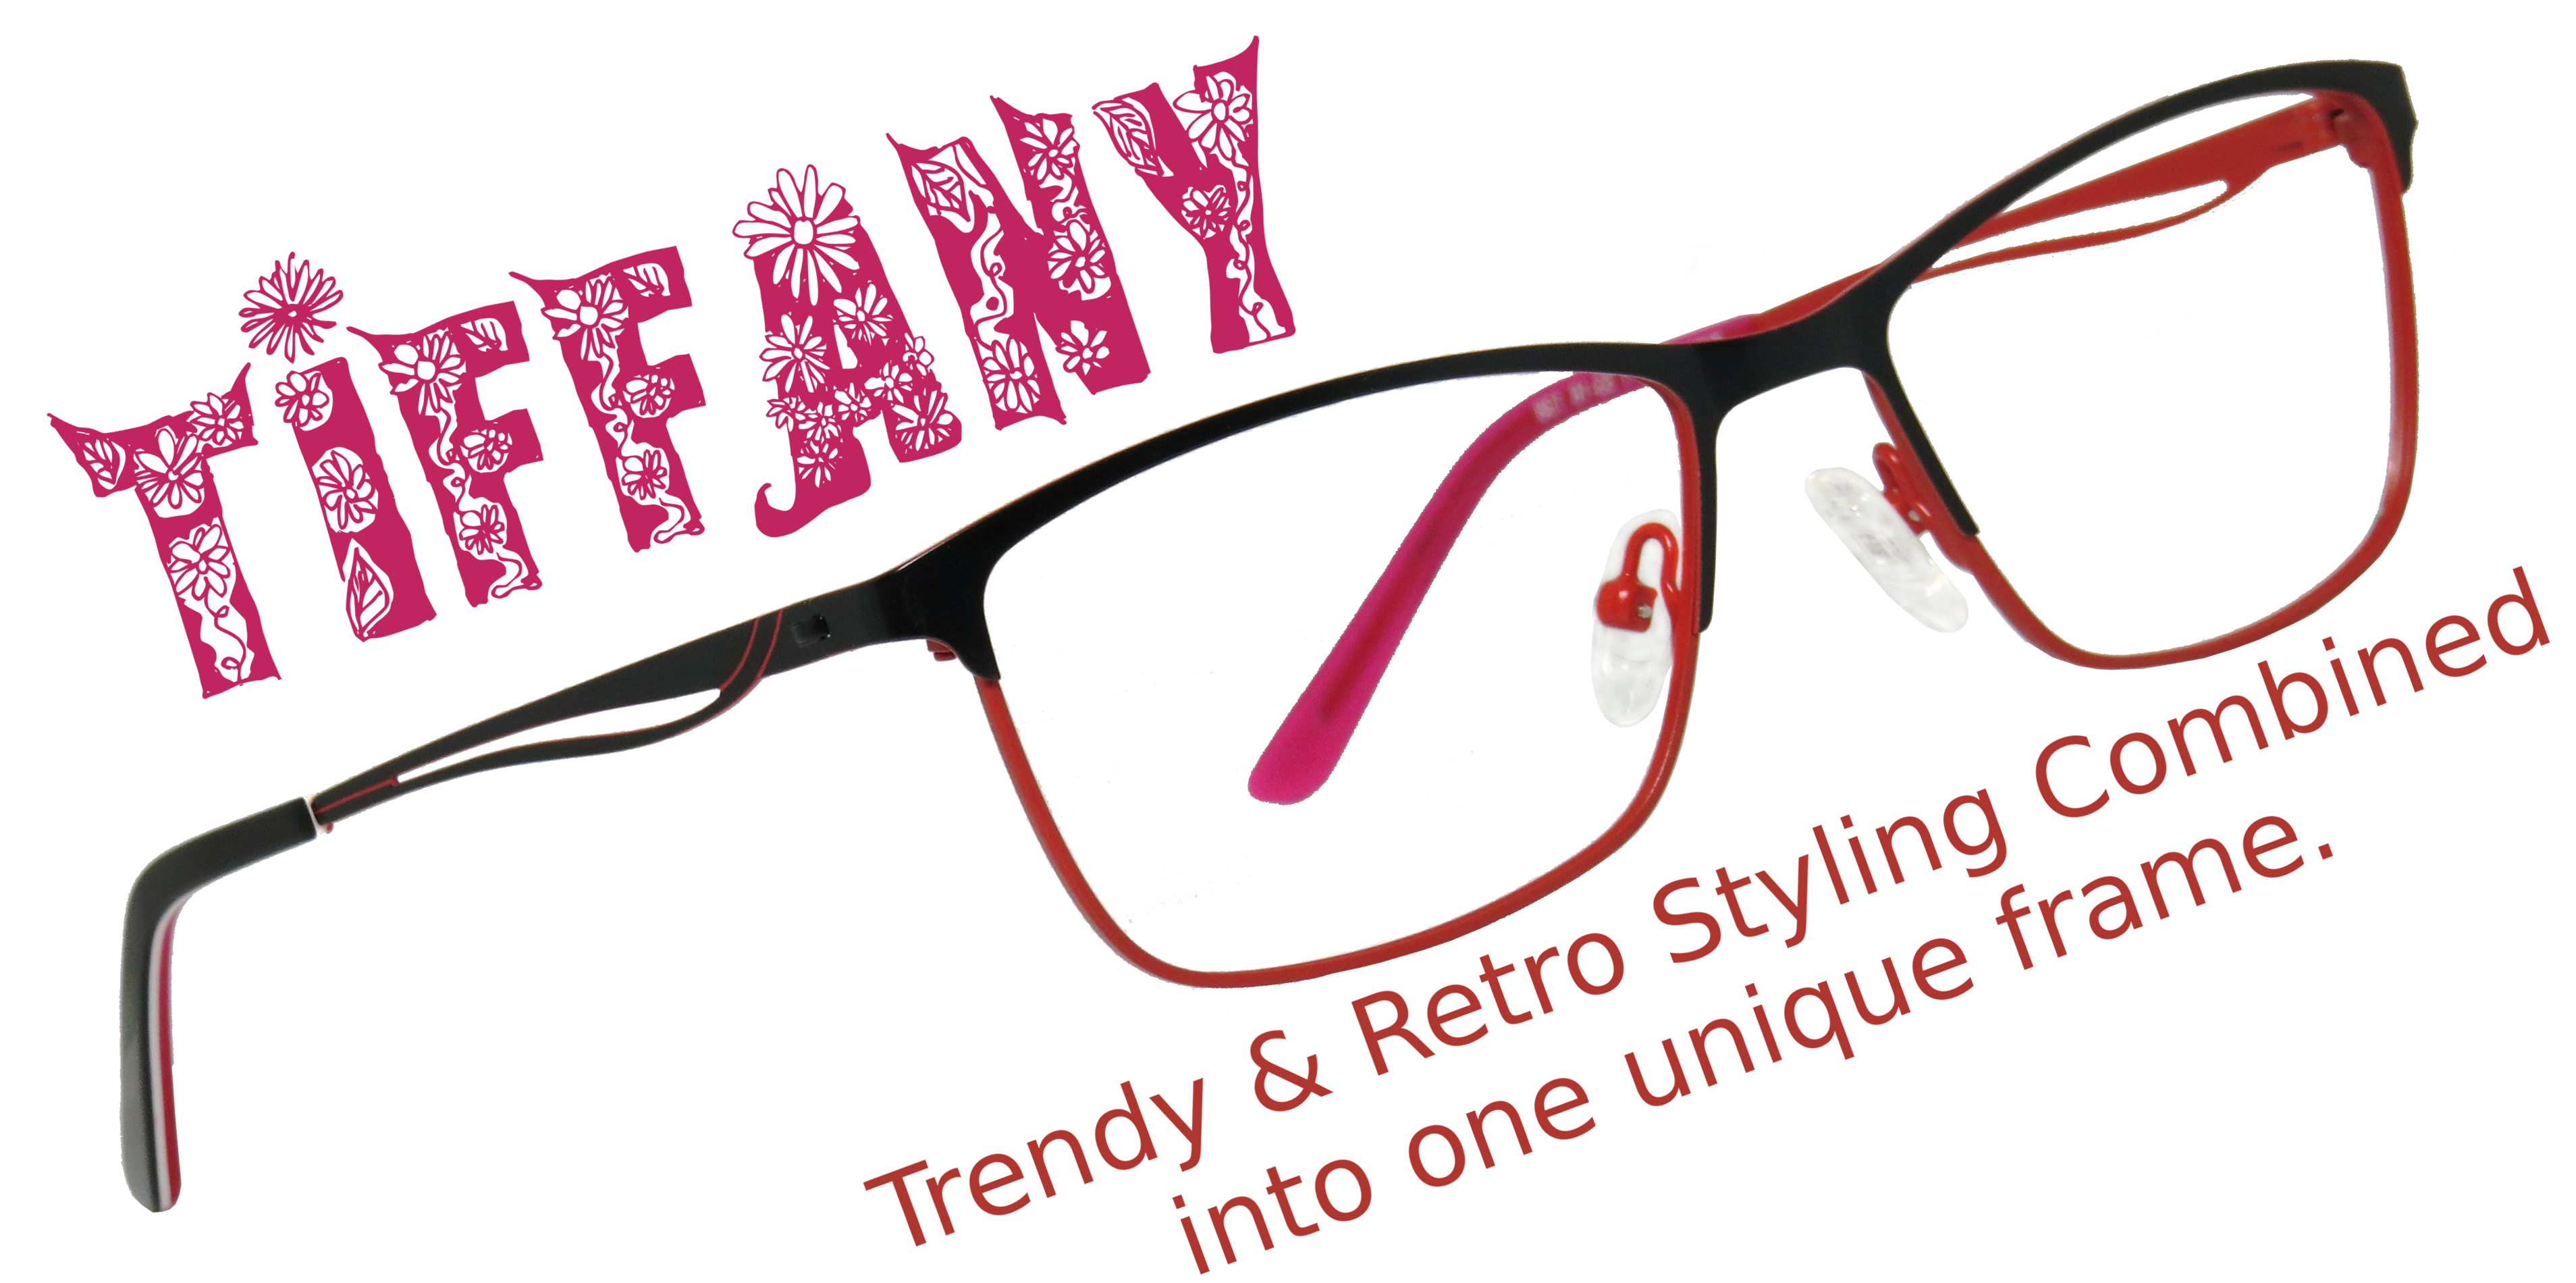 Tiffany: Trendy & Retroy Stylign Combined into one unique frame.